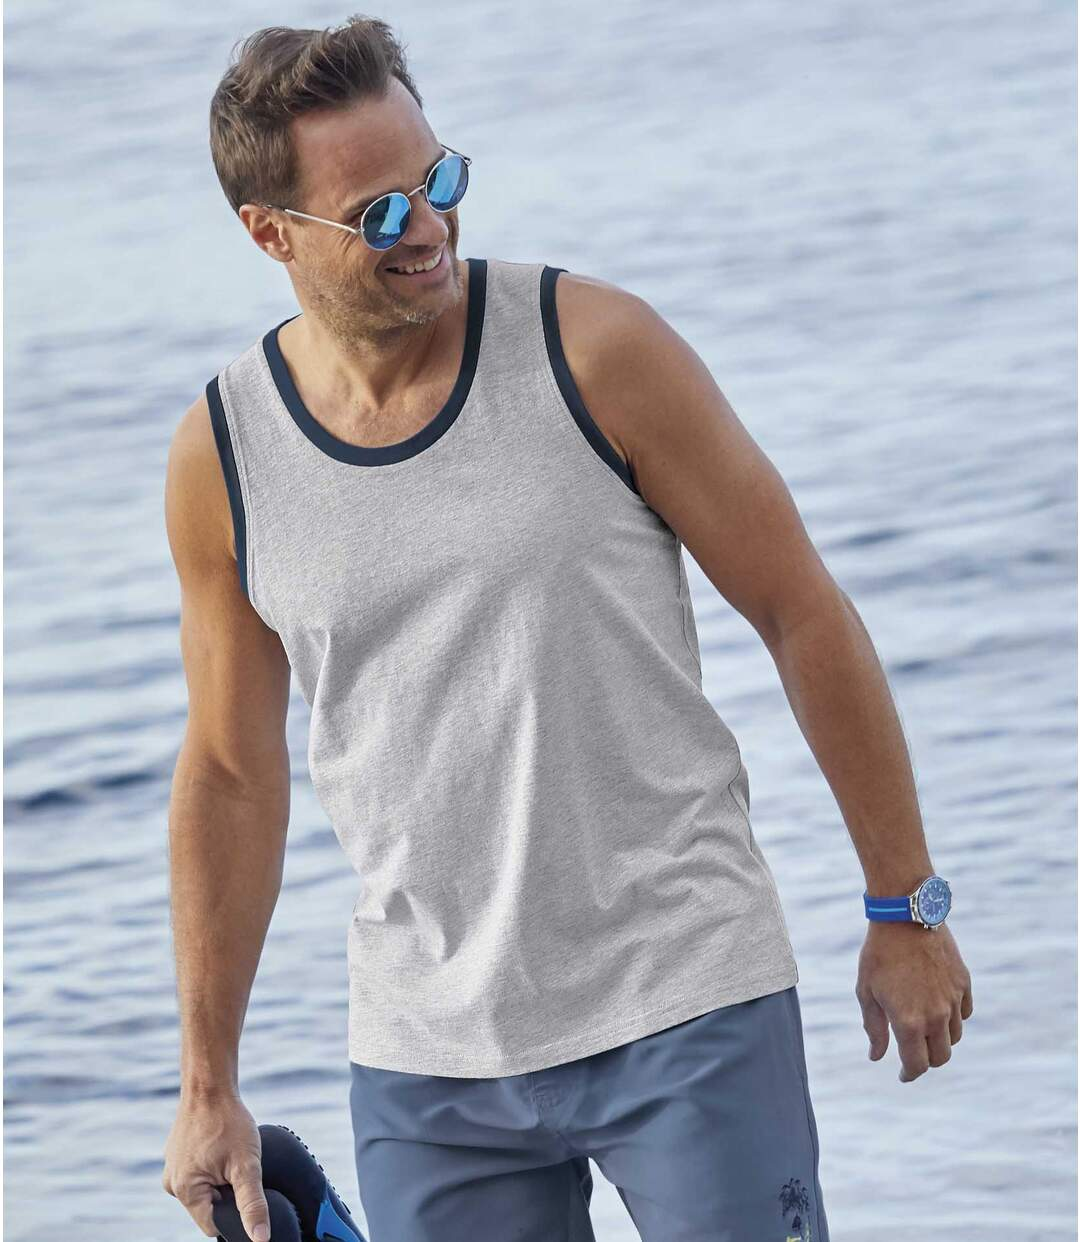 Pack of 3 Men's Sunny Beach Vests - Grey Blue Green